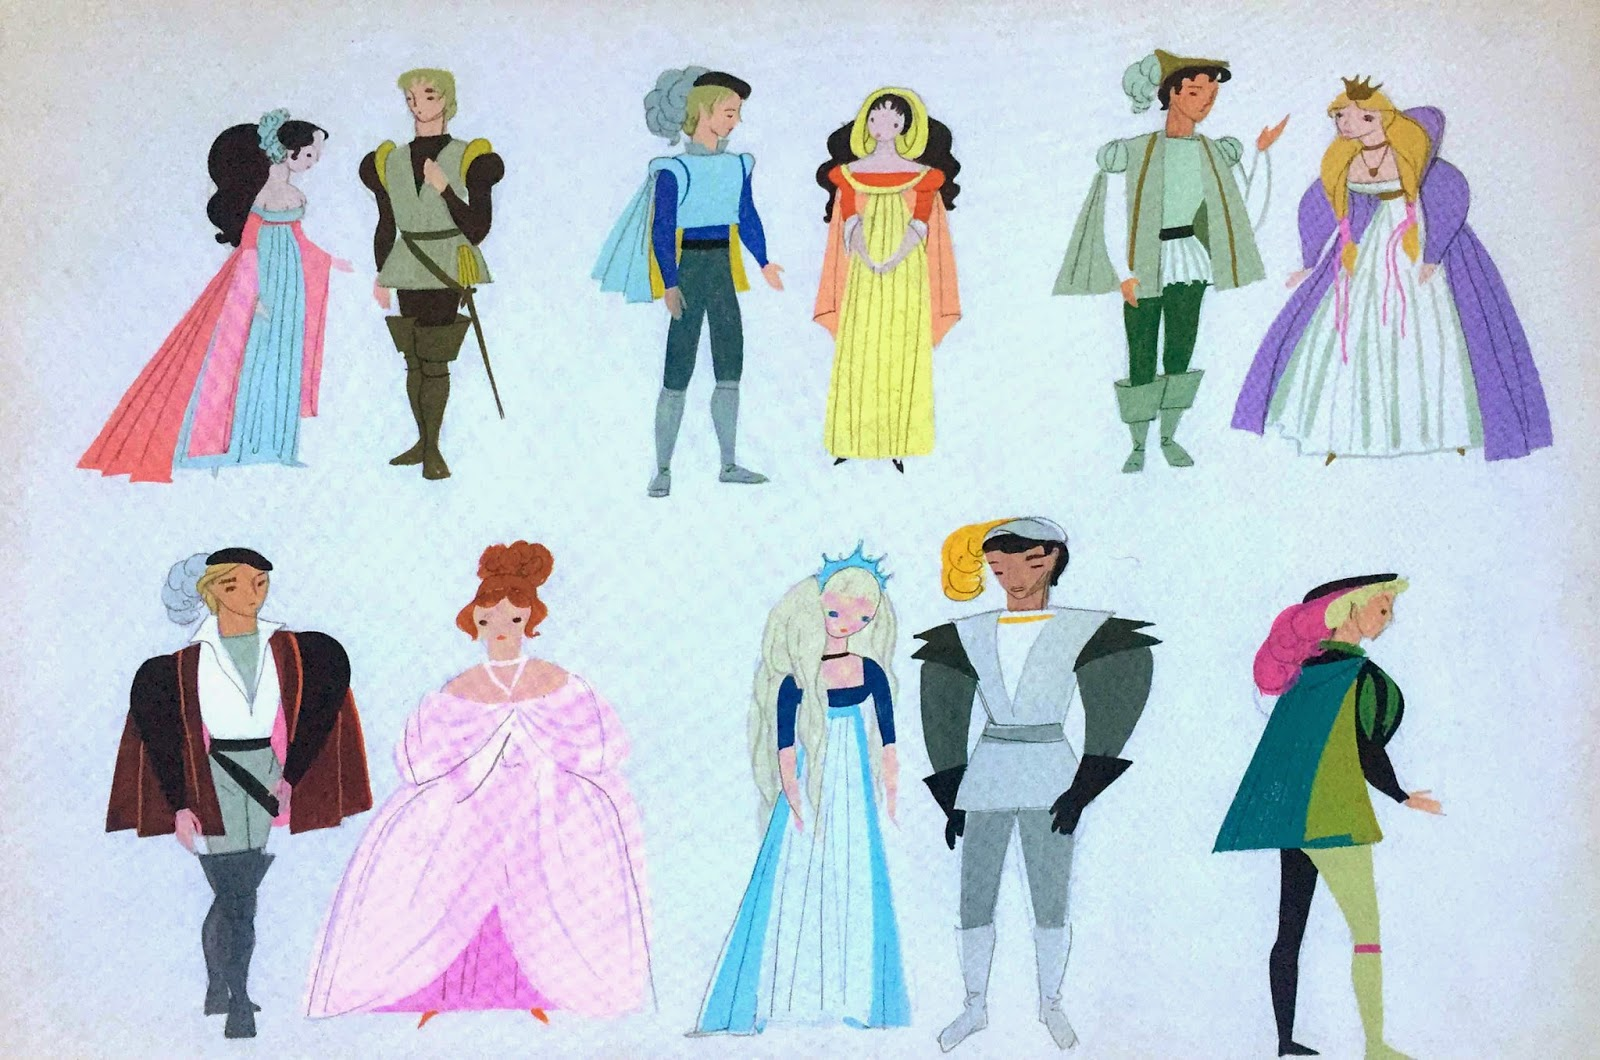 Character Design Work : Disney hipster mary blair character design work for